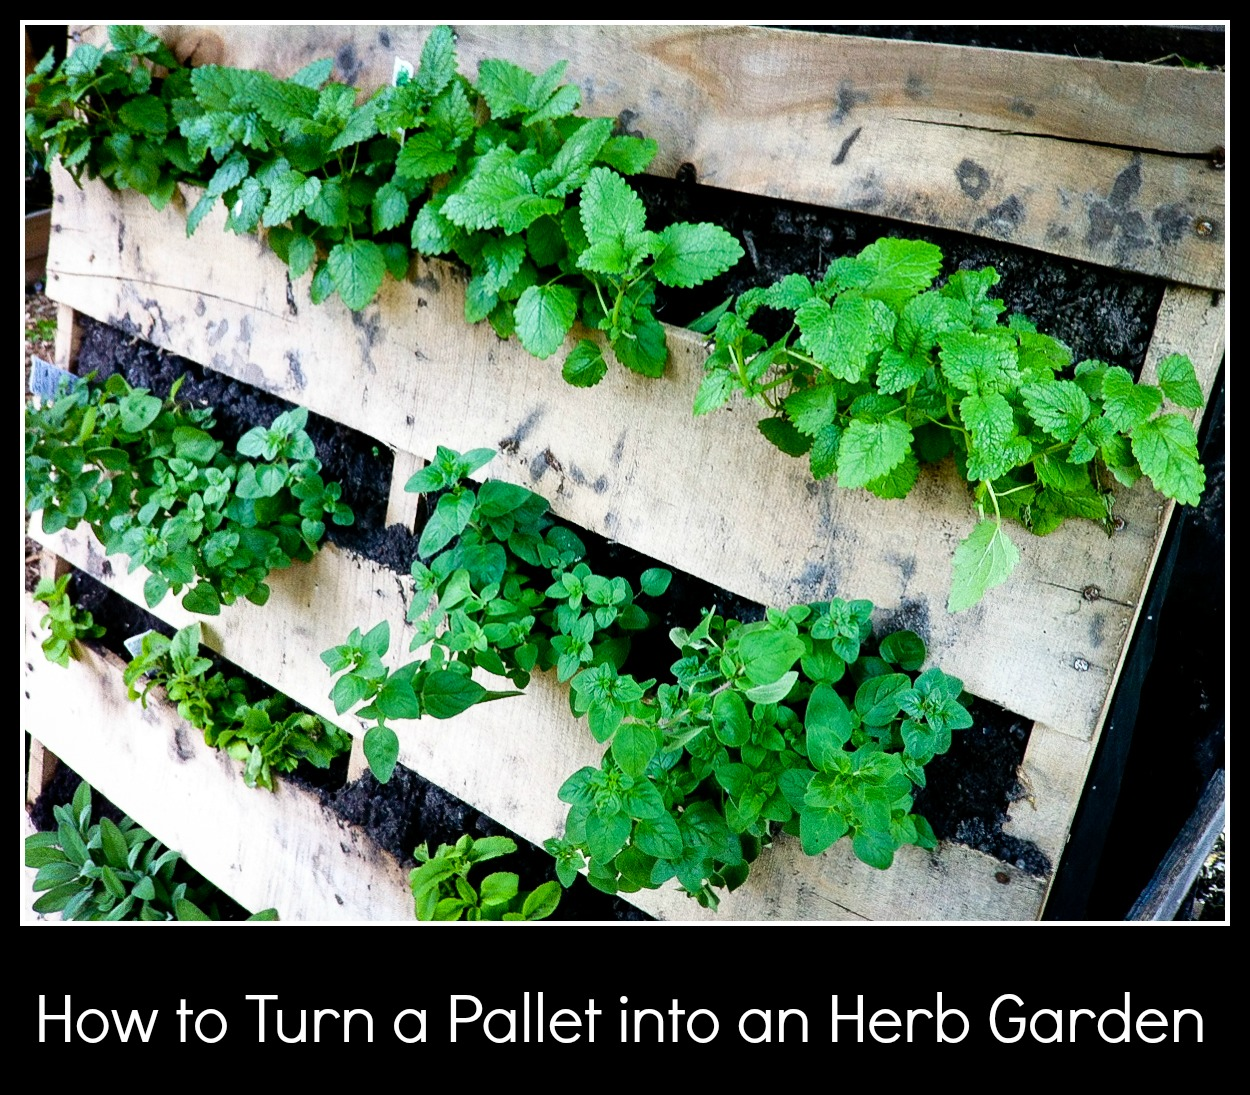 How to Turn a Pallet into an Herb Garden